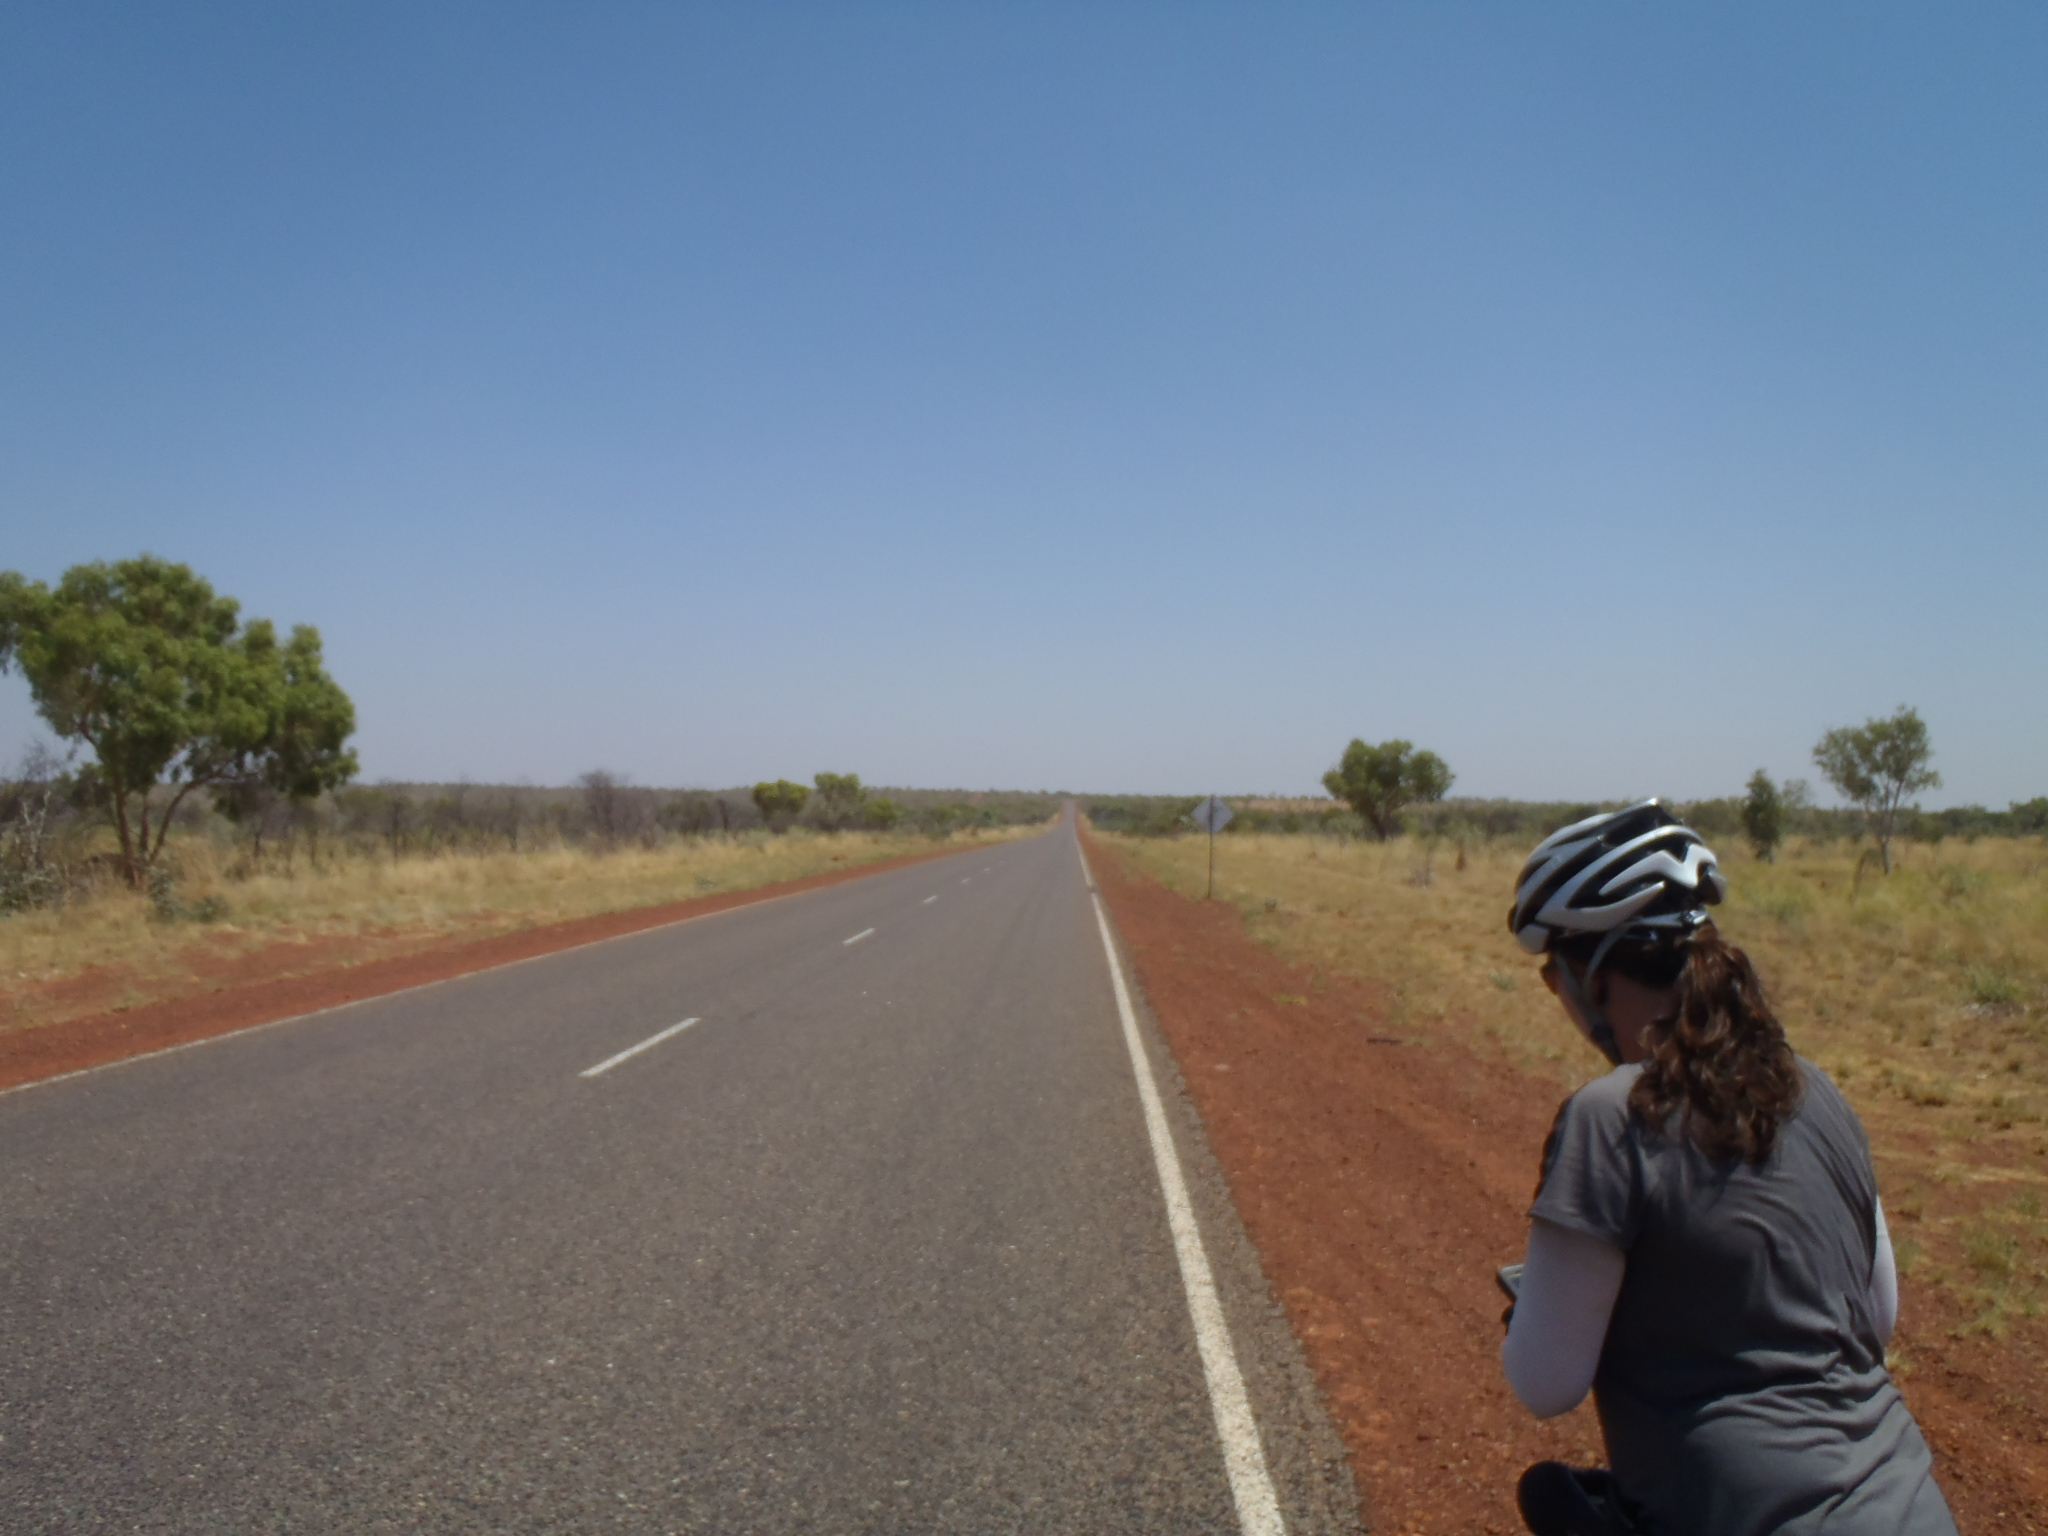 Cycling The Australian outback